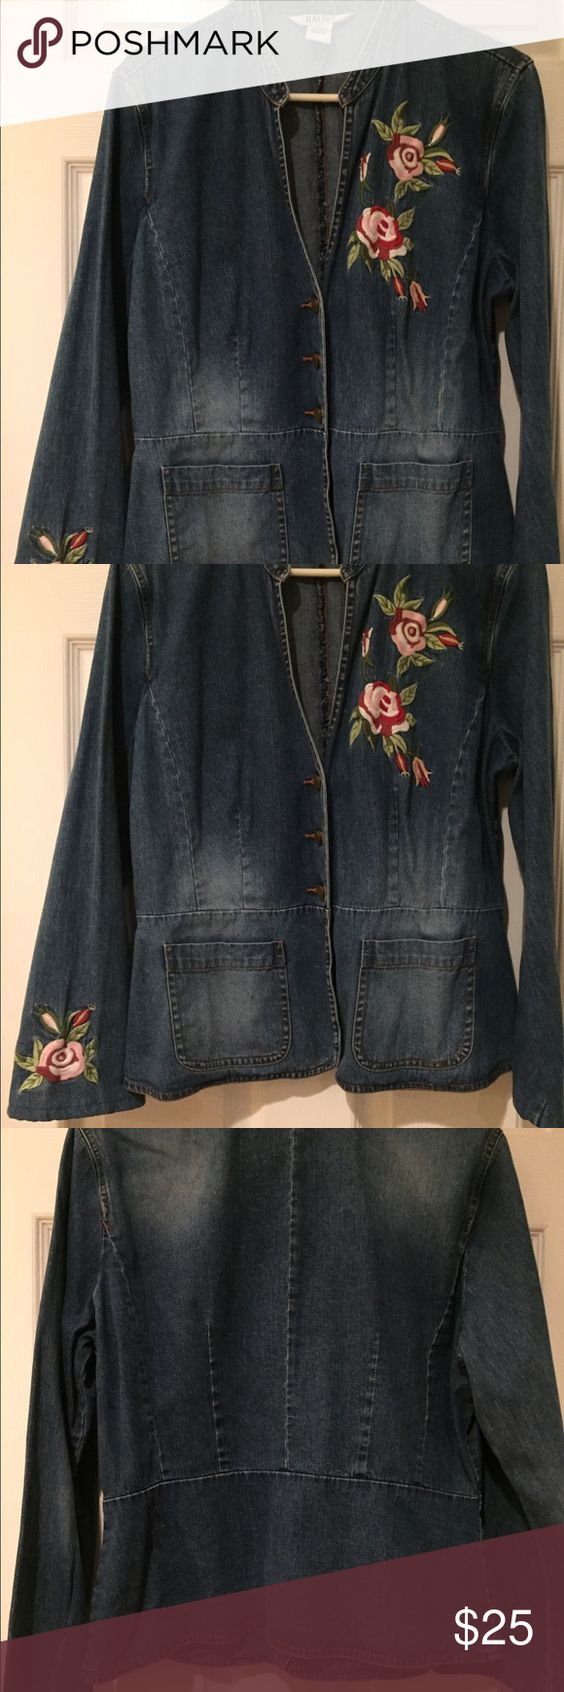 Bell sleeves denim jacket Bell sleeves, 3 front button up & embroidered denim jacket with front square pockets. Ralsey Jackets & Coats Jean Jackets